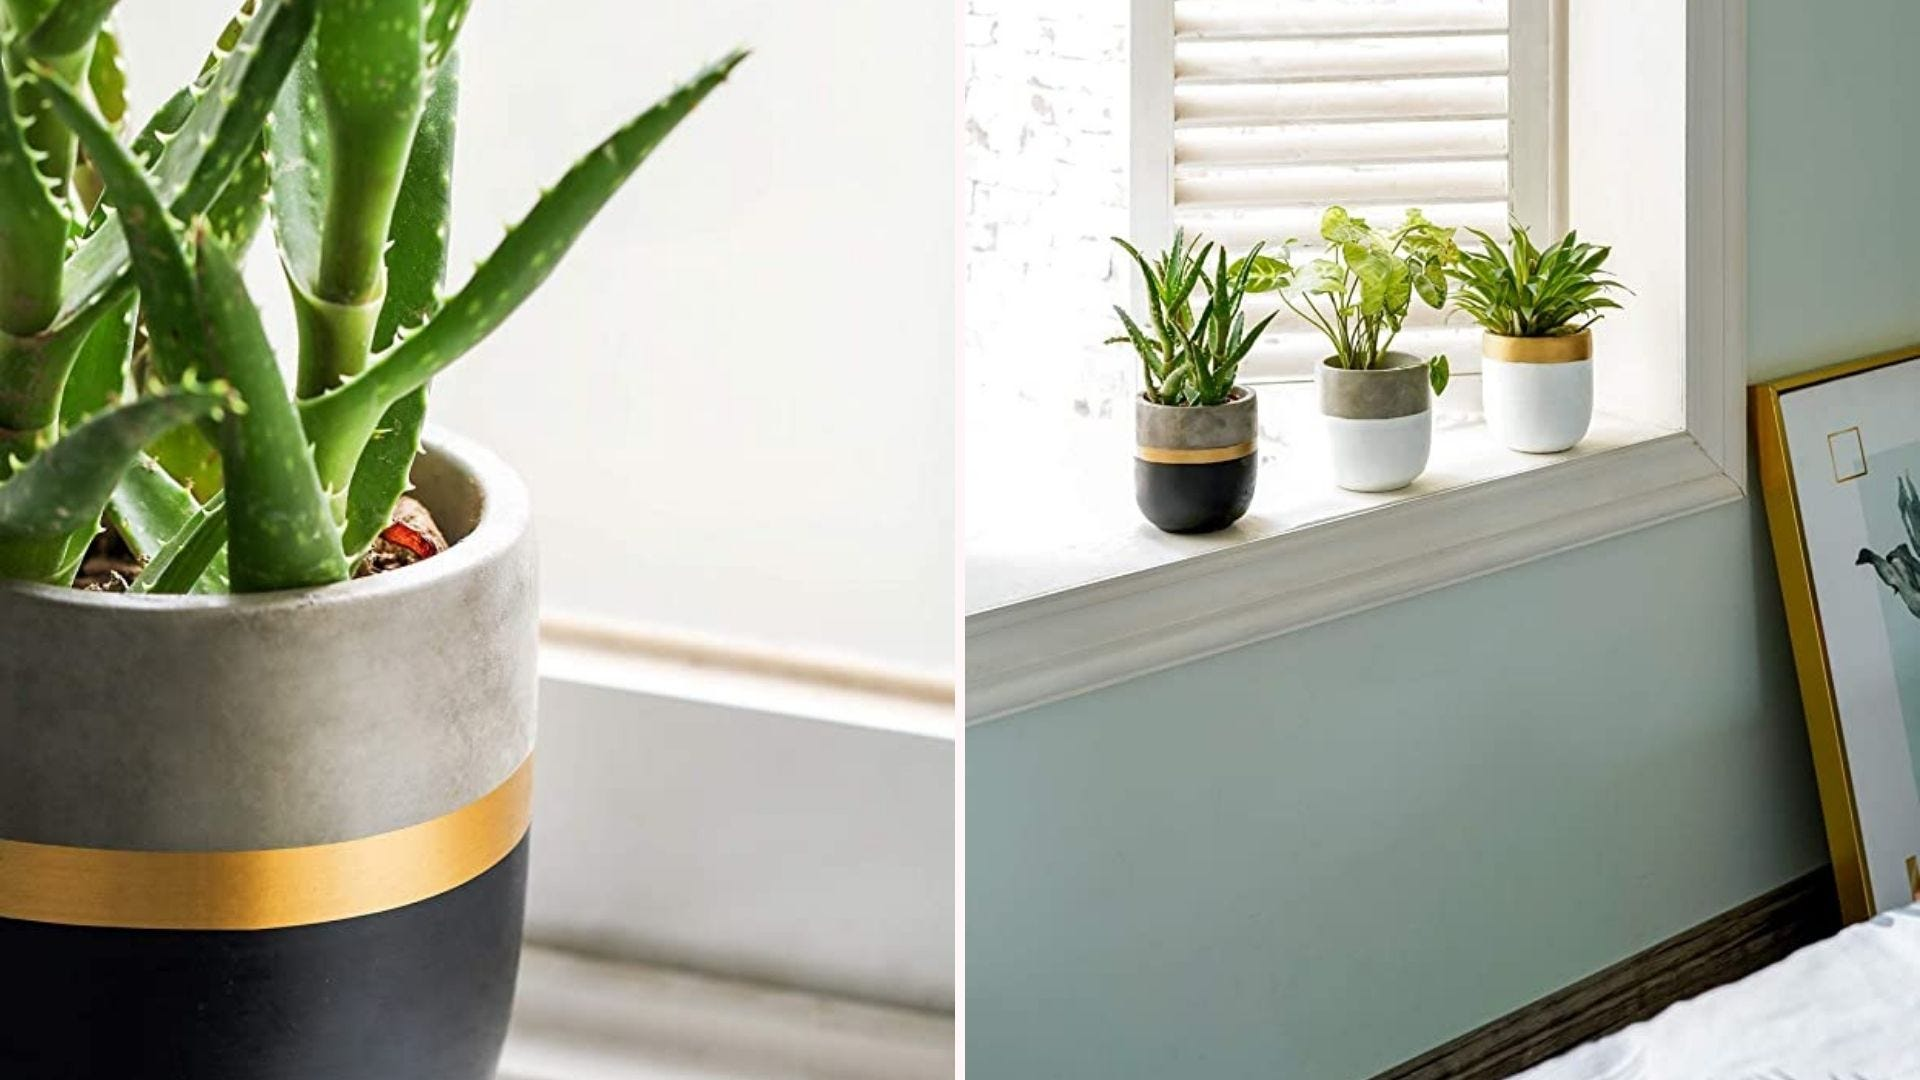 On the left, a single plant in a mini concrete planter, and on the right, a row of three mini planters on a windowsill.